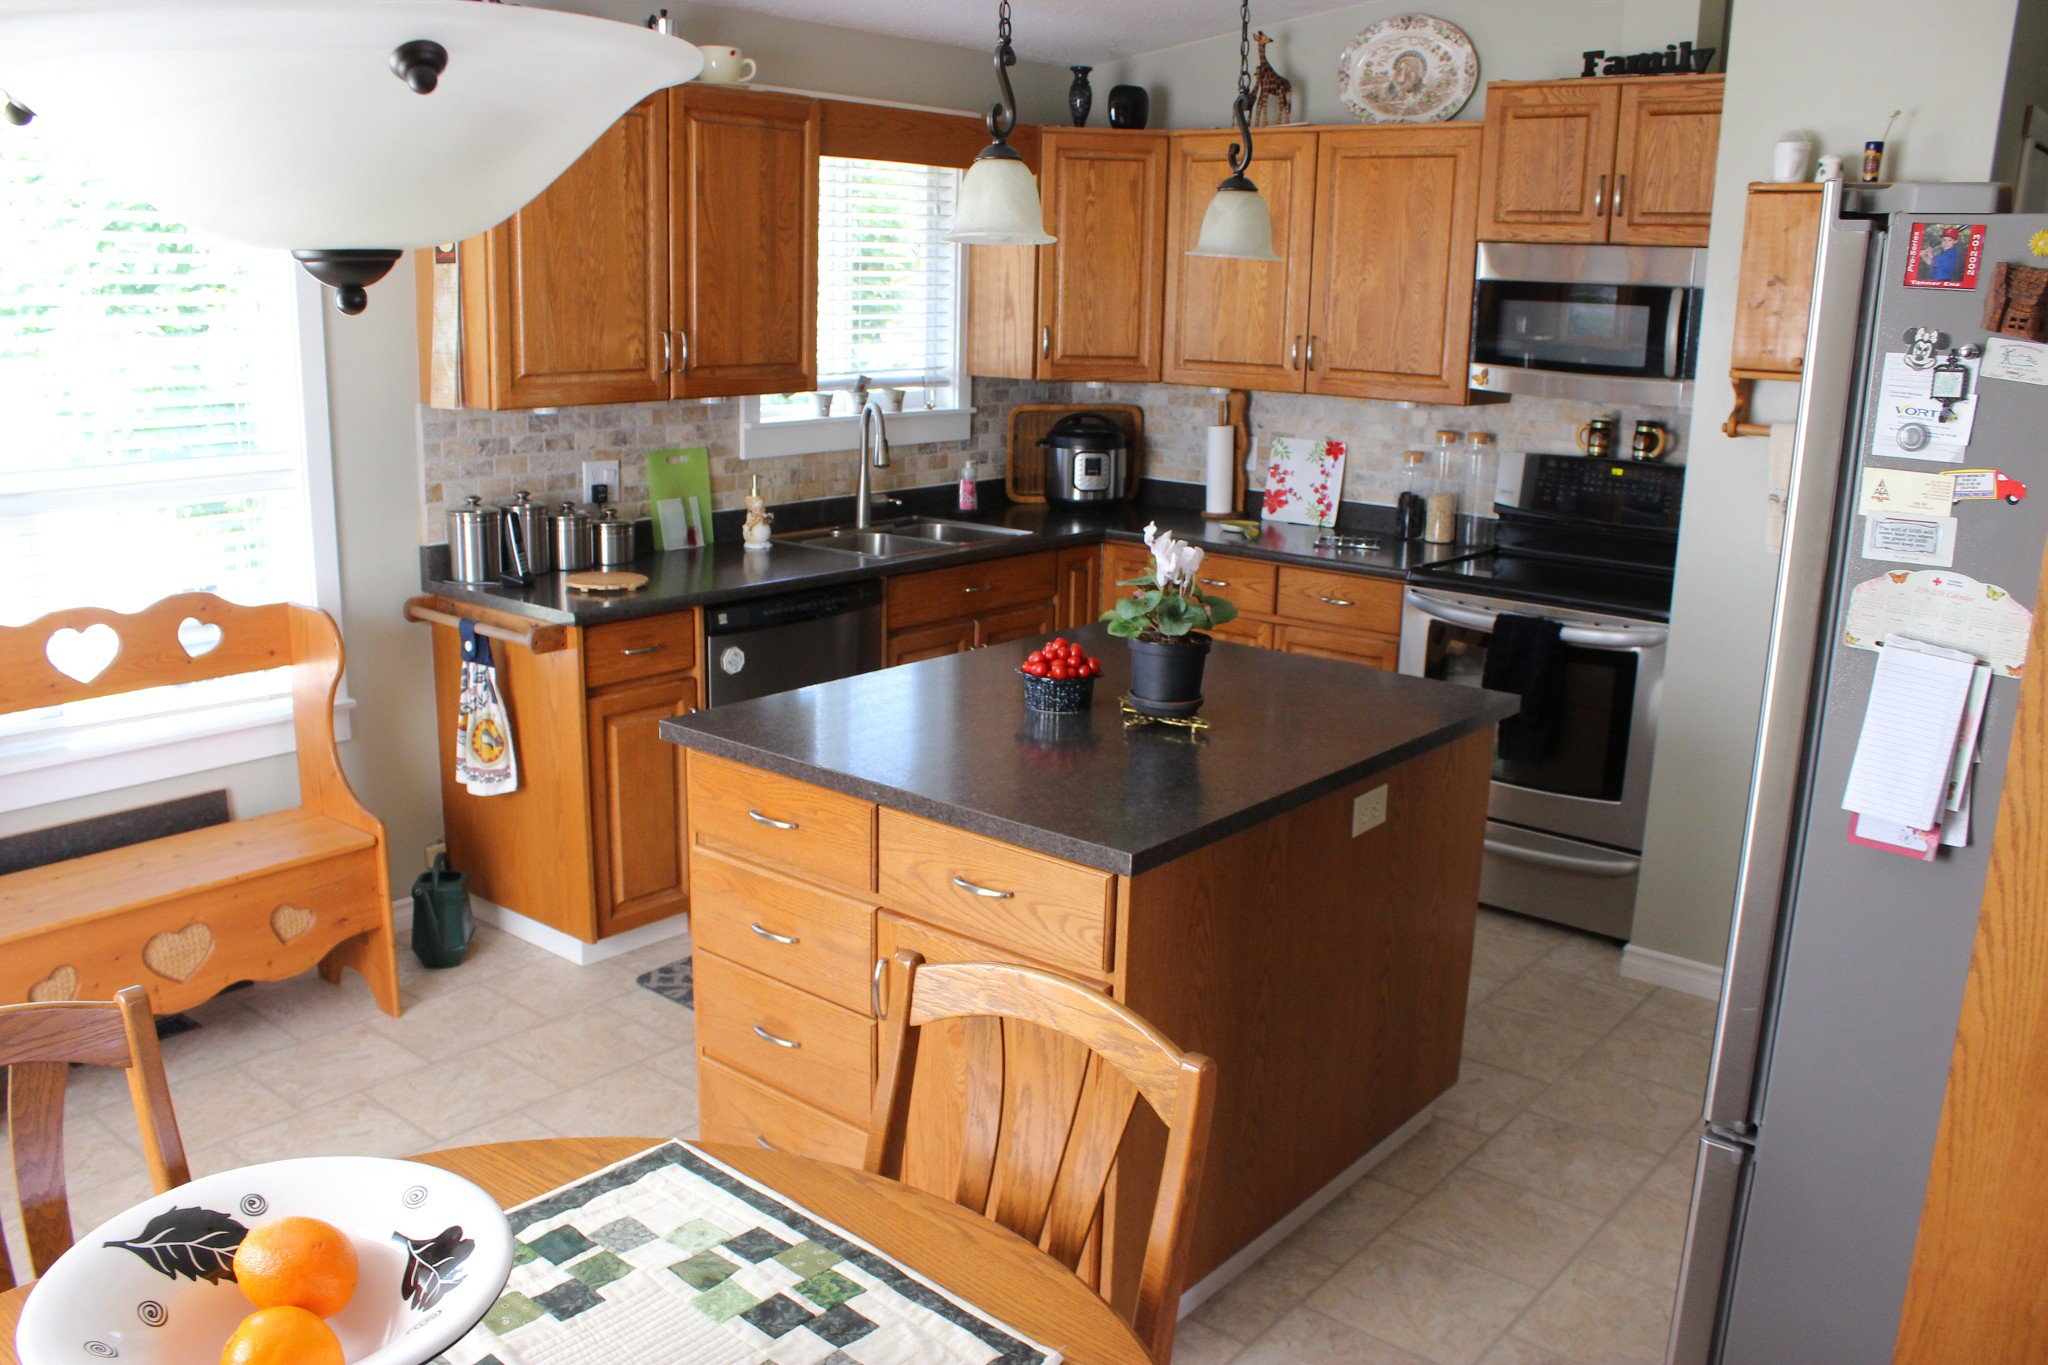 Photo 11: Photos: 333 Lakeshore Drive in Chase: House for sale : MLS®# 151753